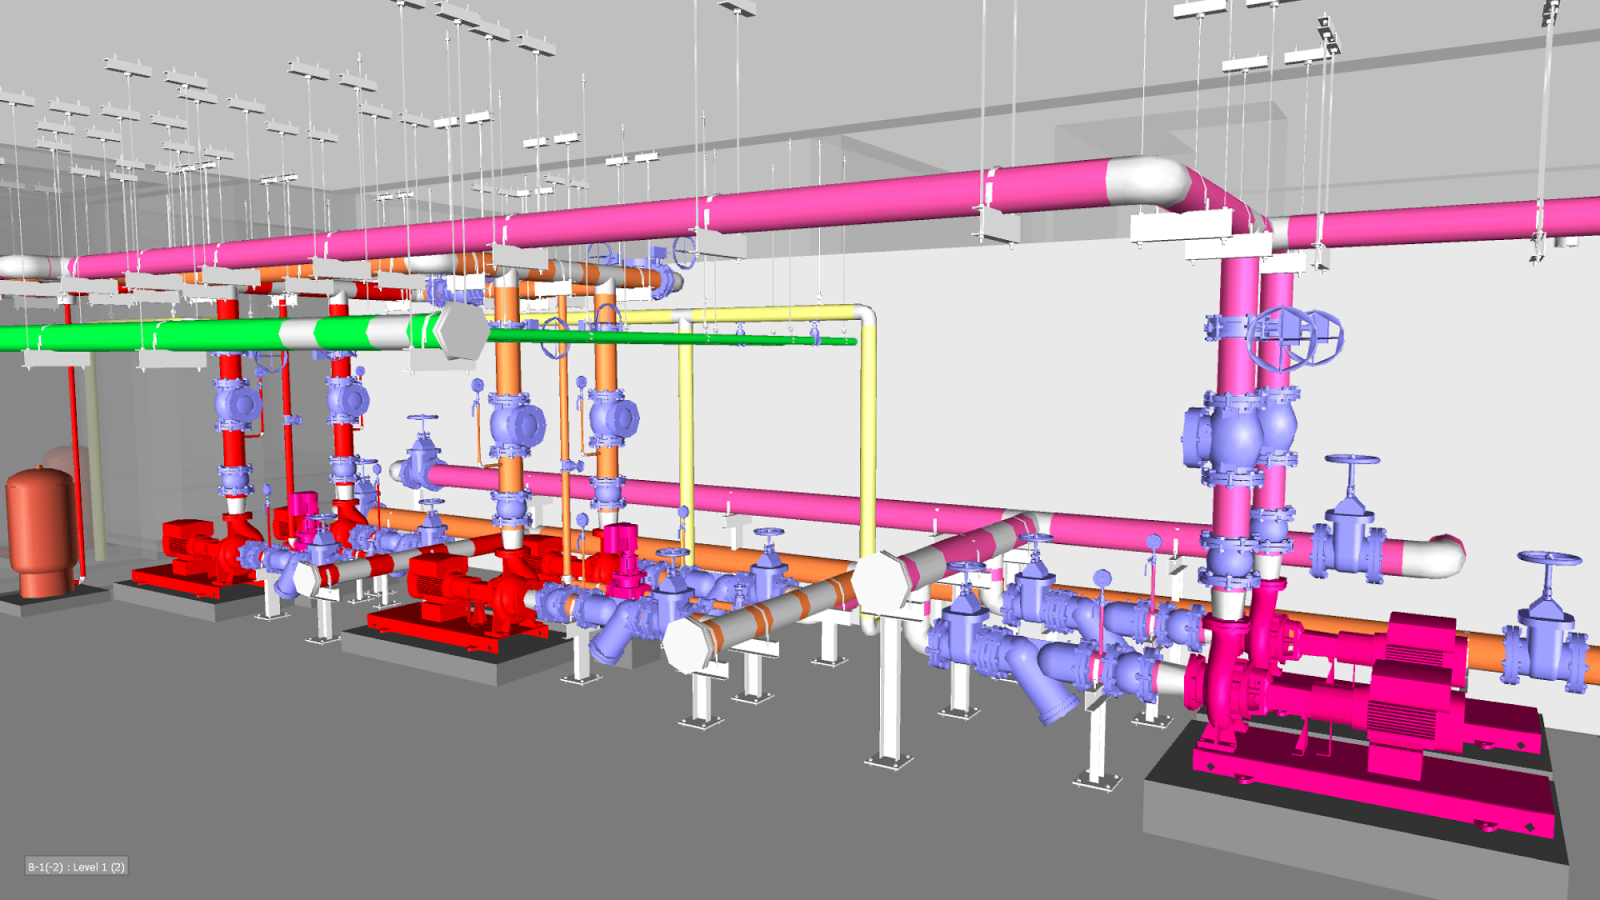 Fire Pump Room AutoCAD Drawings, dwg Layouts for Pump Room